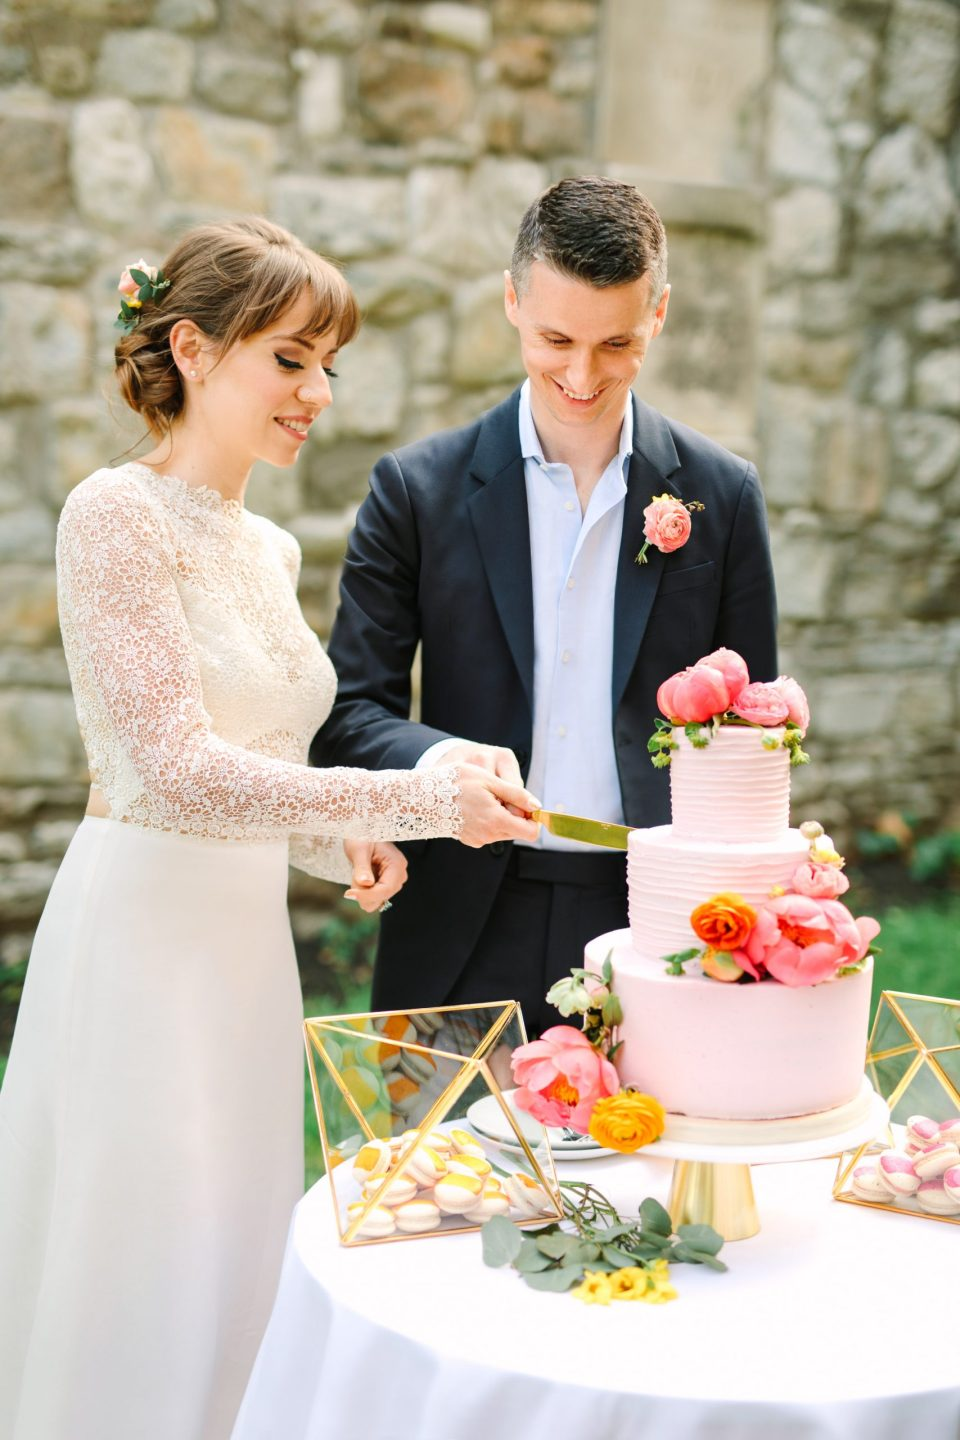 Bride and groom cutting wedding cake by Mary Costa Photography